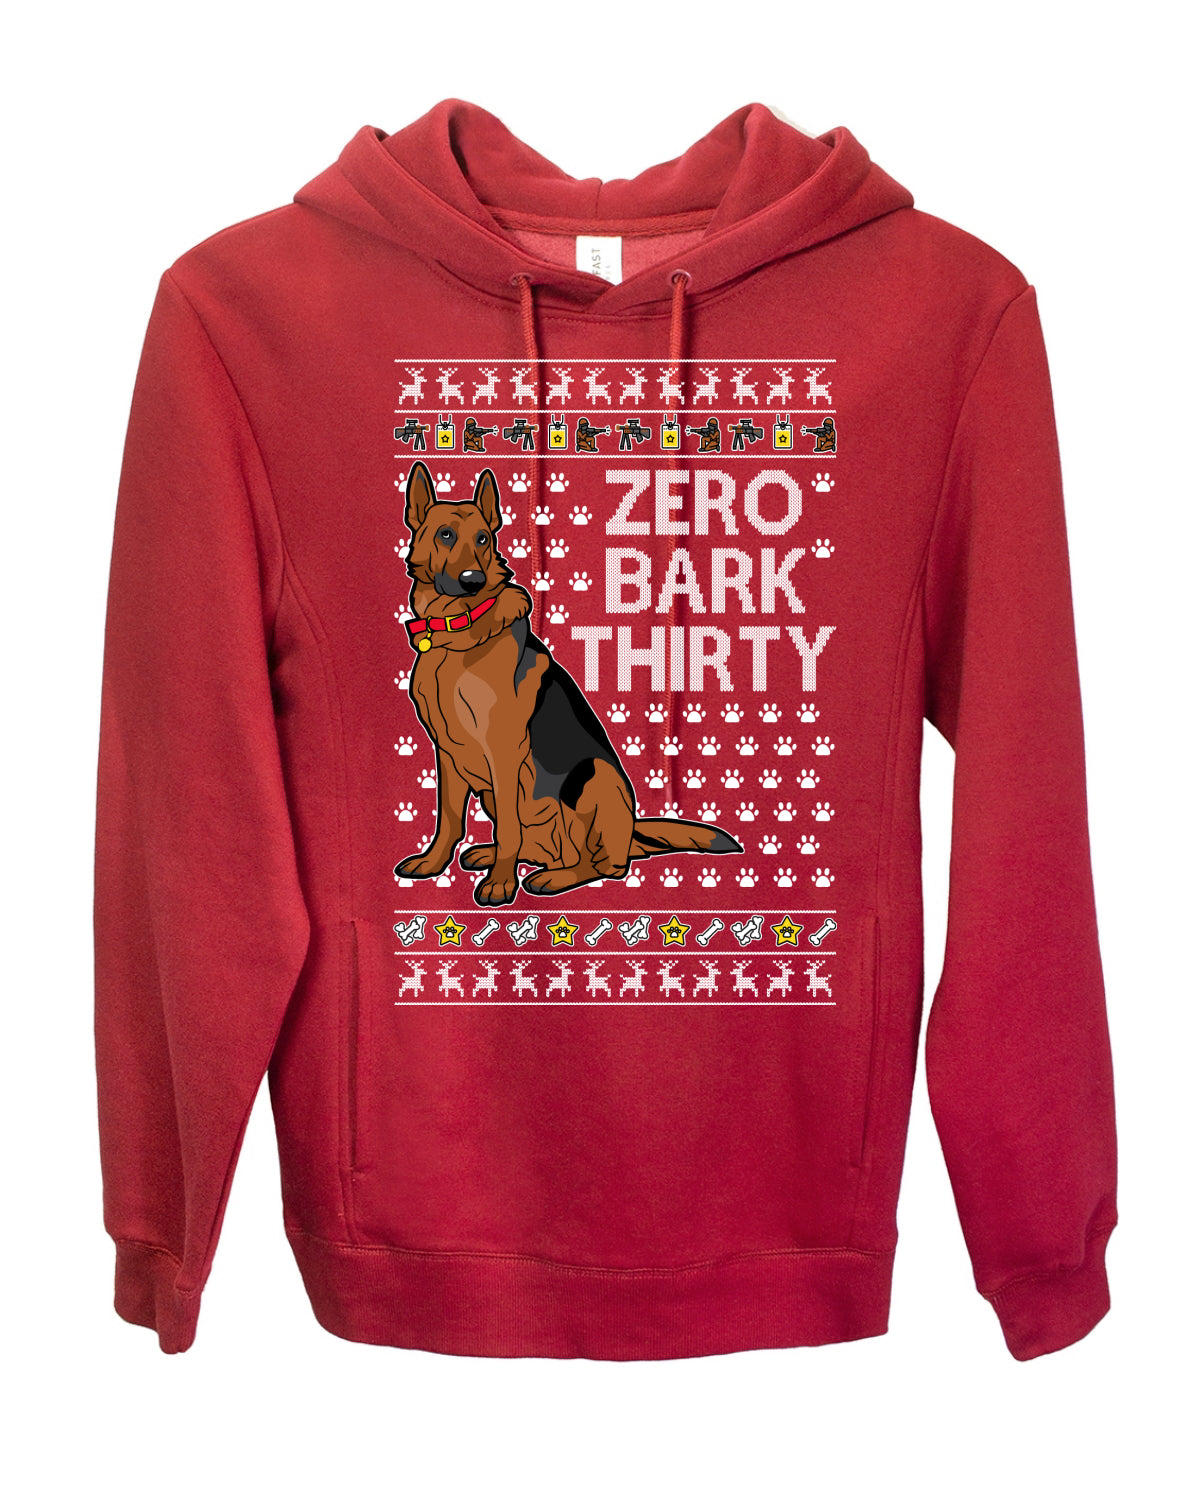 Zero Bark Thirty Funny Dog Xmas Ugly Christmas Premium Graphic Hoodie Sweatshirt